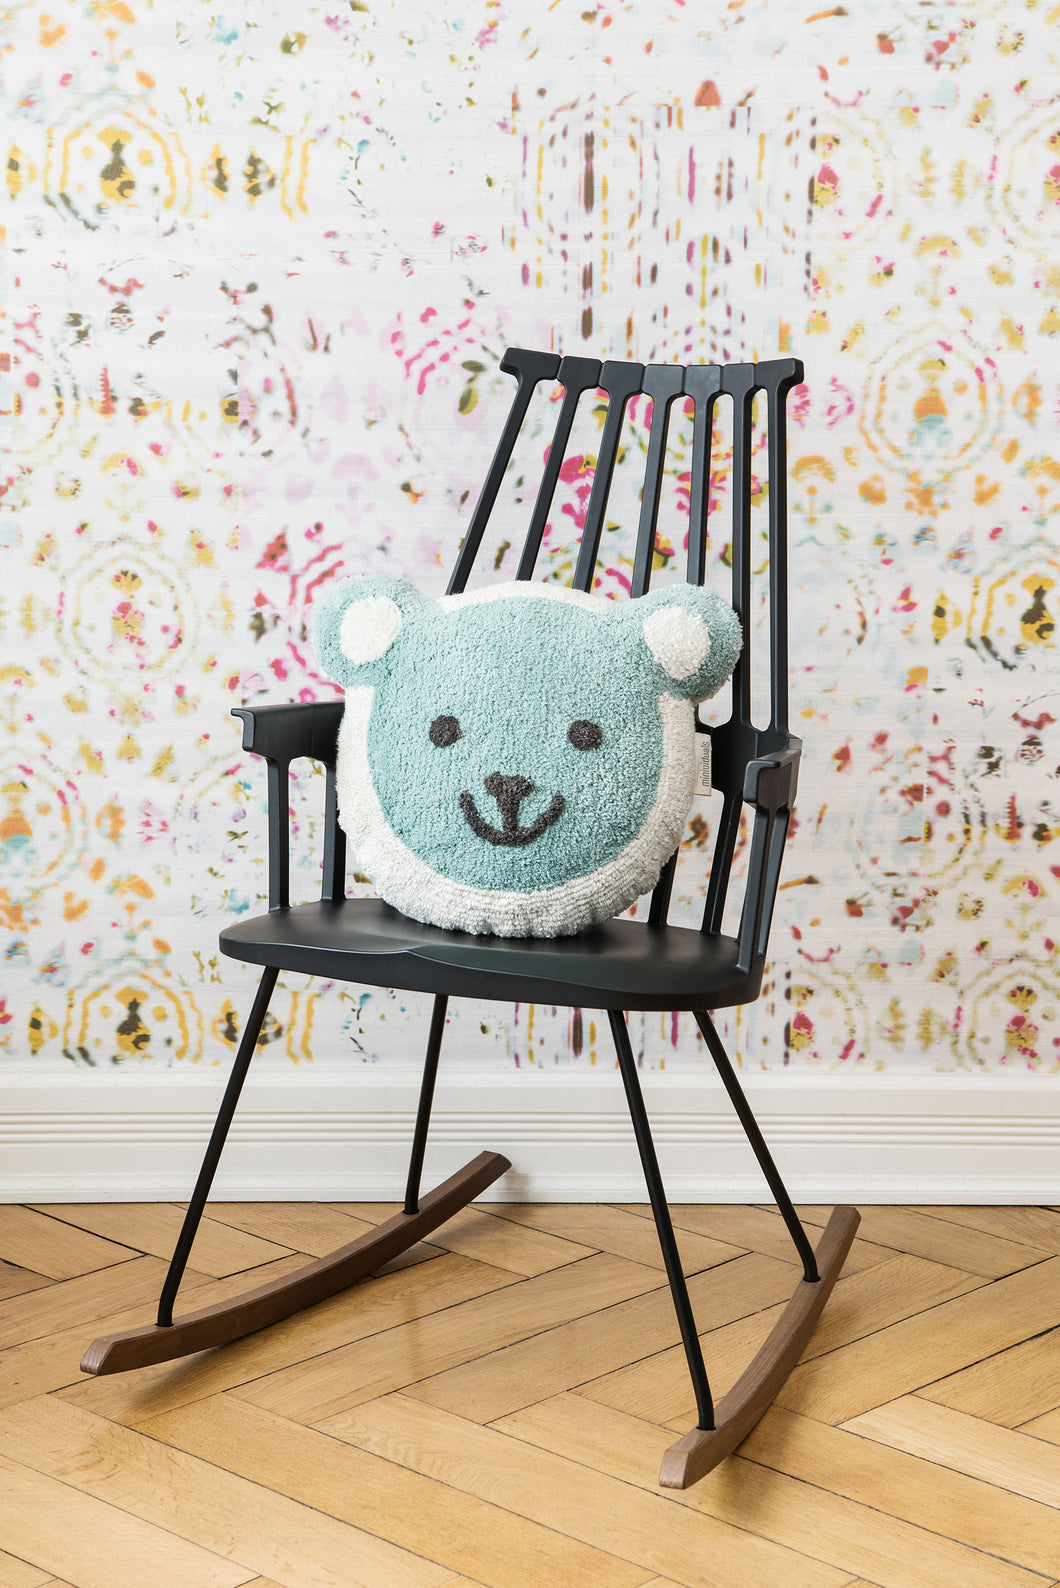 FAV 33 - Cushion Bear